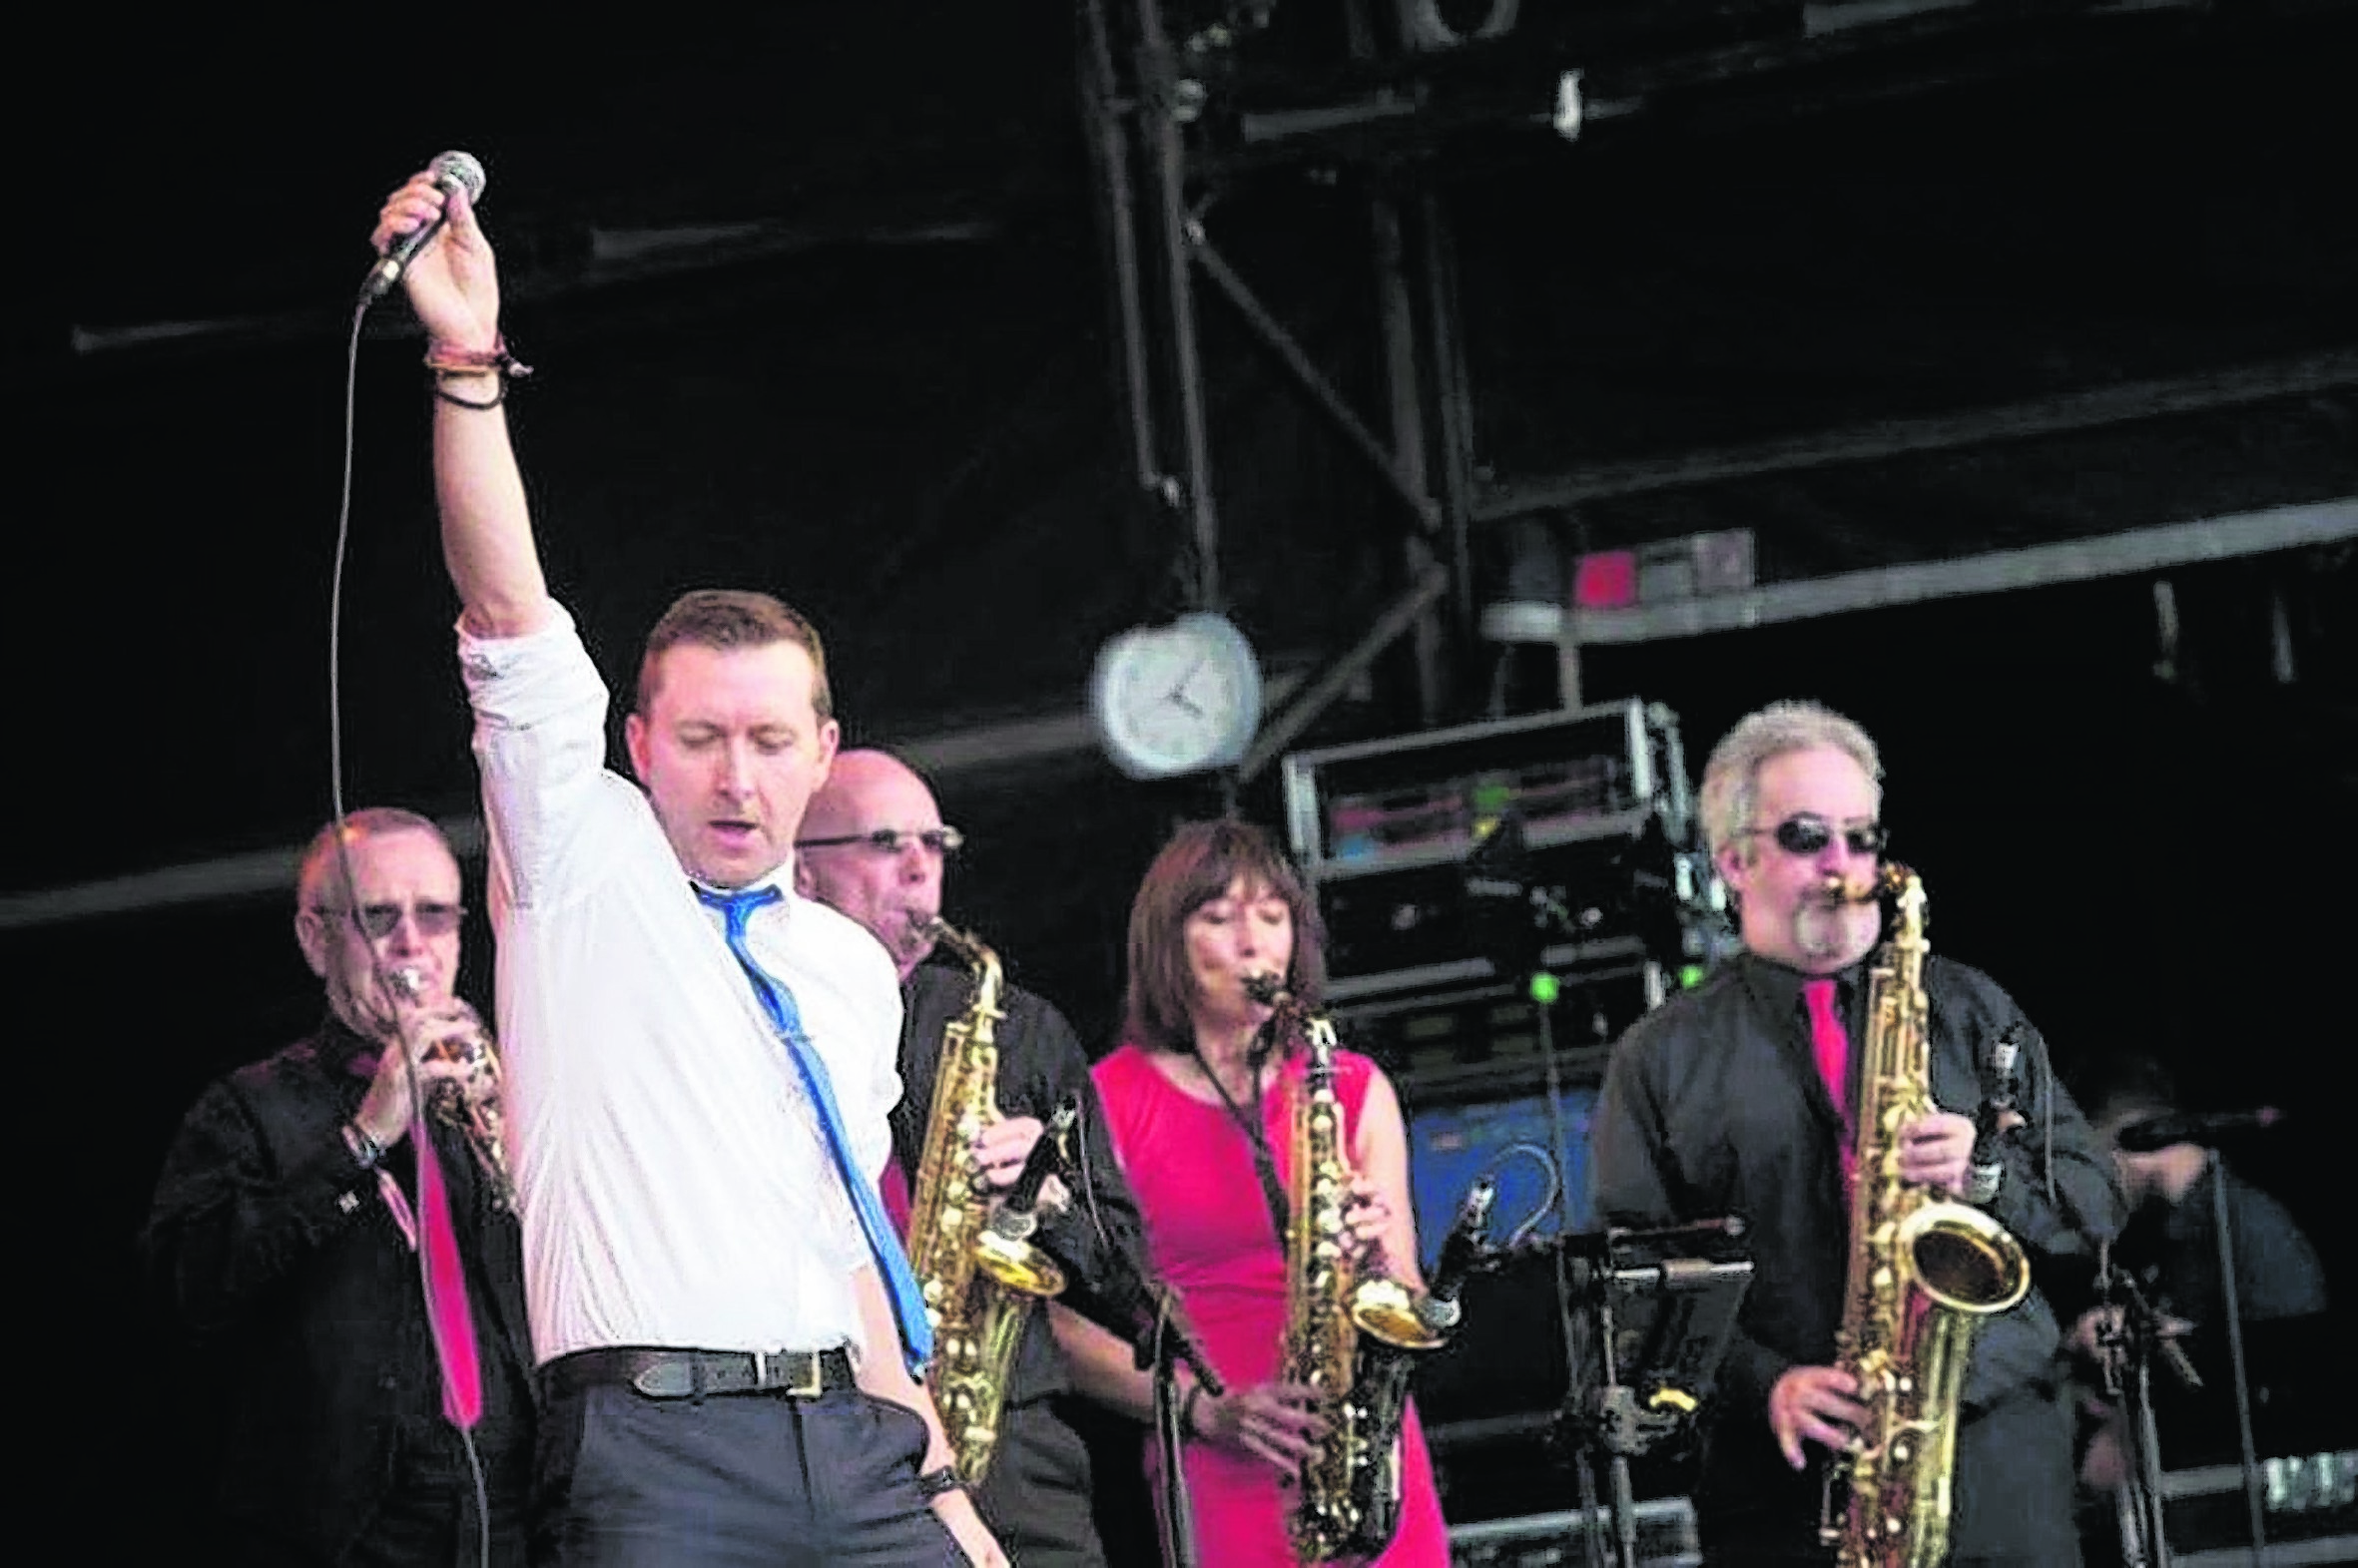 Scooty and the Skyhooks in action